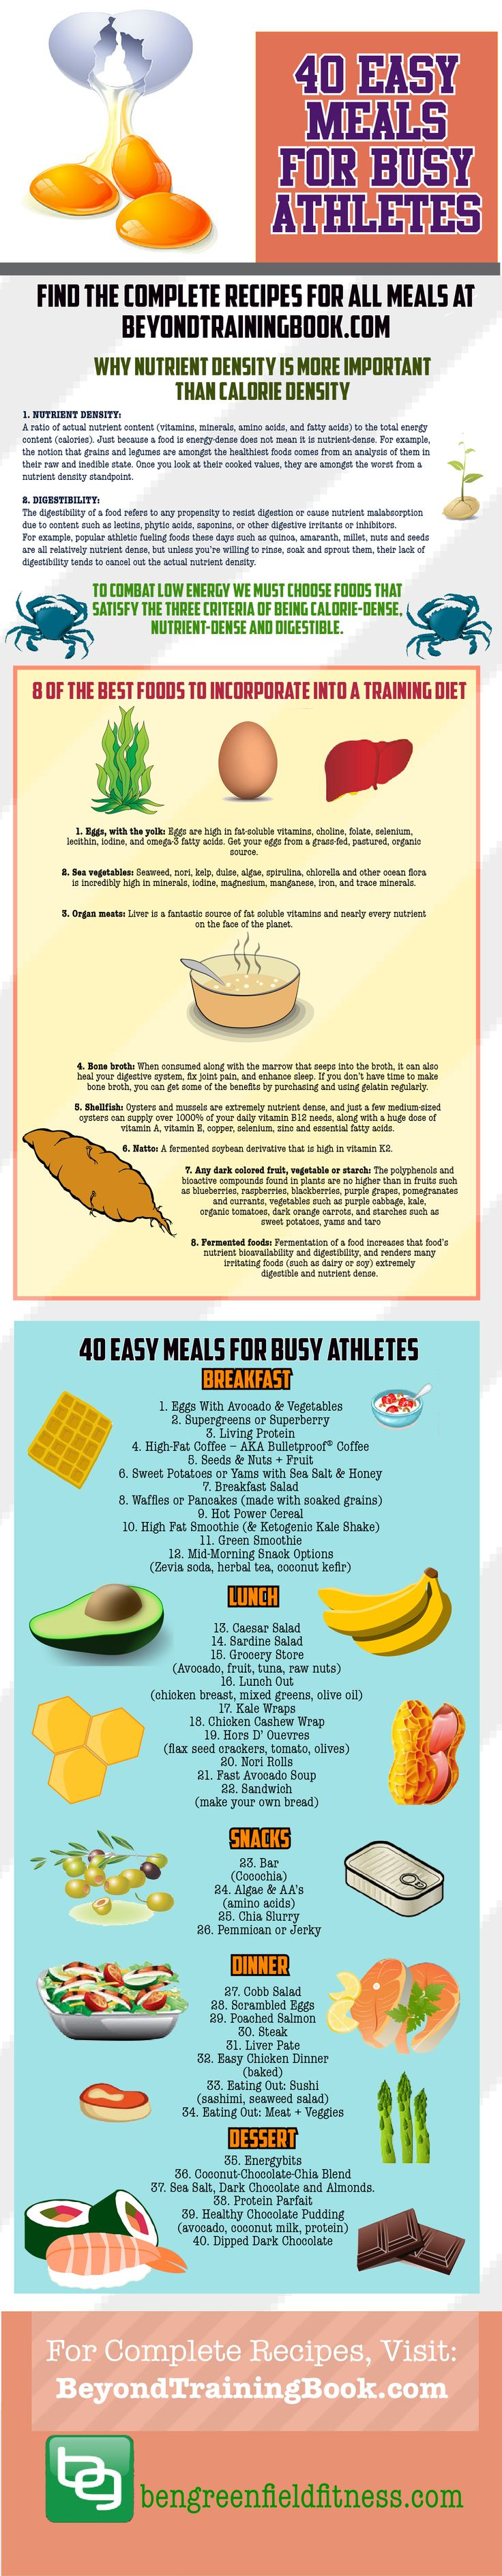 40 Easy Meals for Busy Athletes from Beyond Training diet